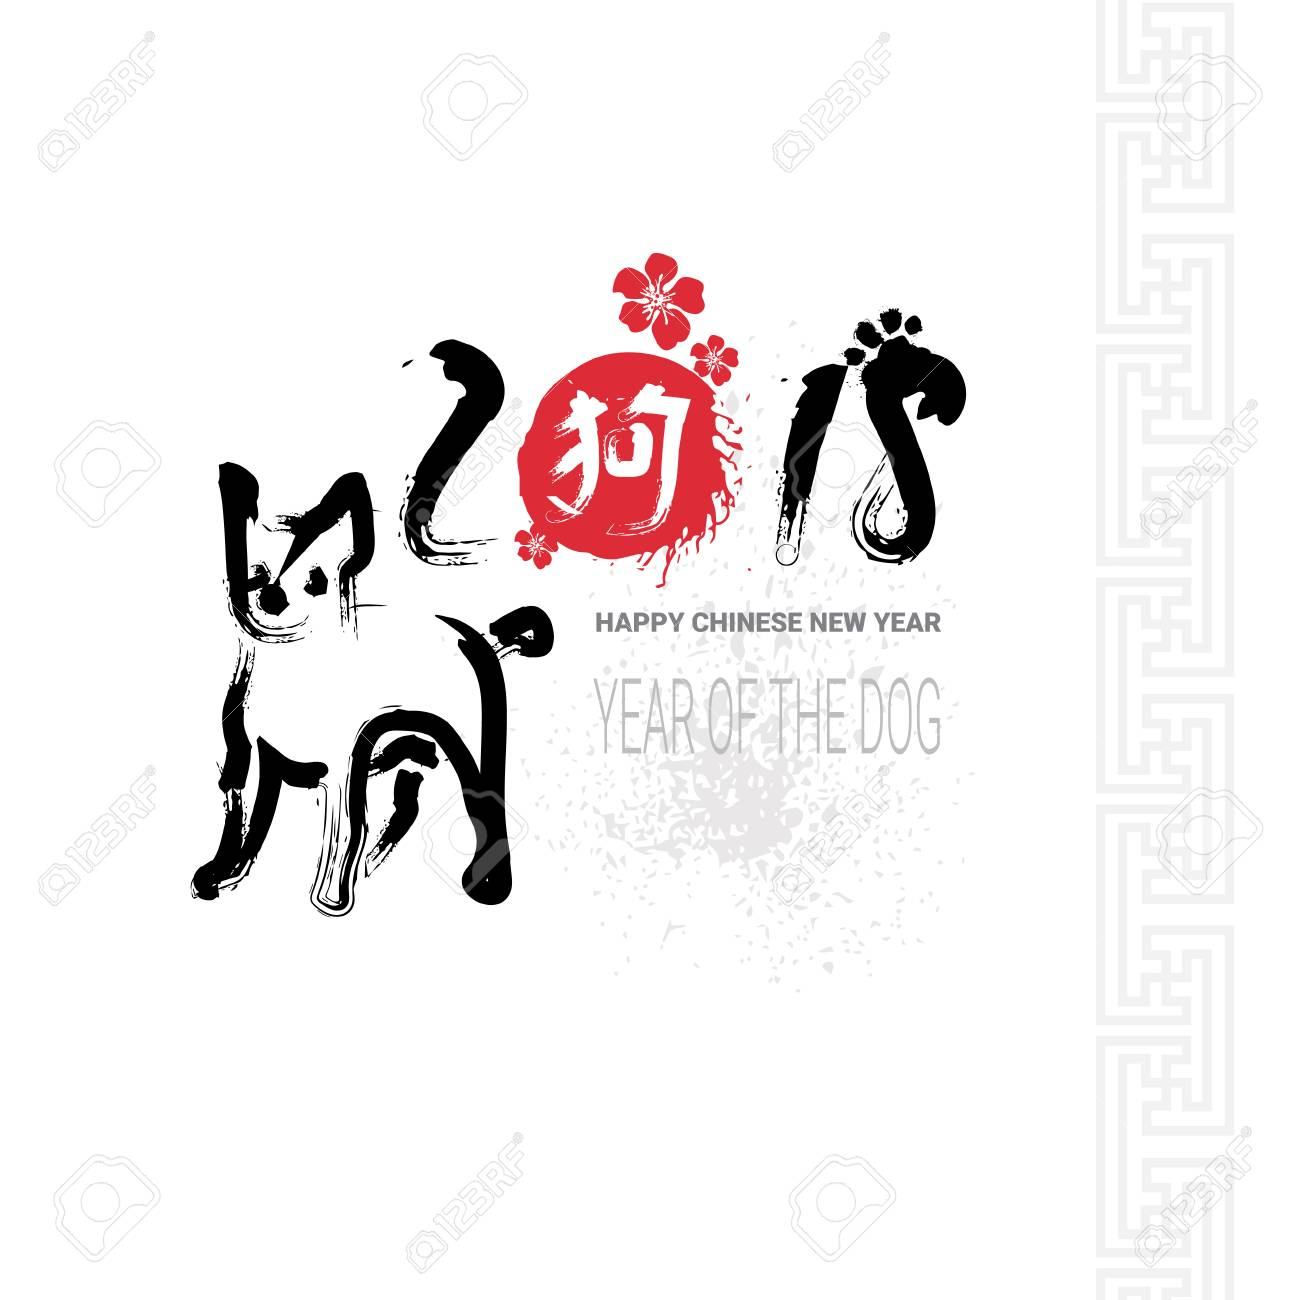 Happy Chinese New Year Black Brush Calligraphy 2018 Dog Sign Vector Illustration Stock